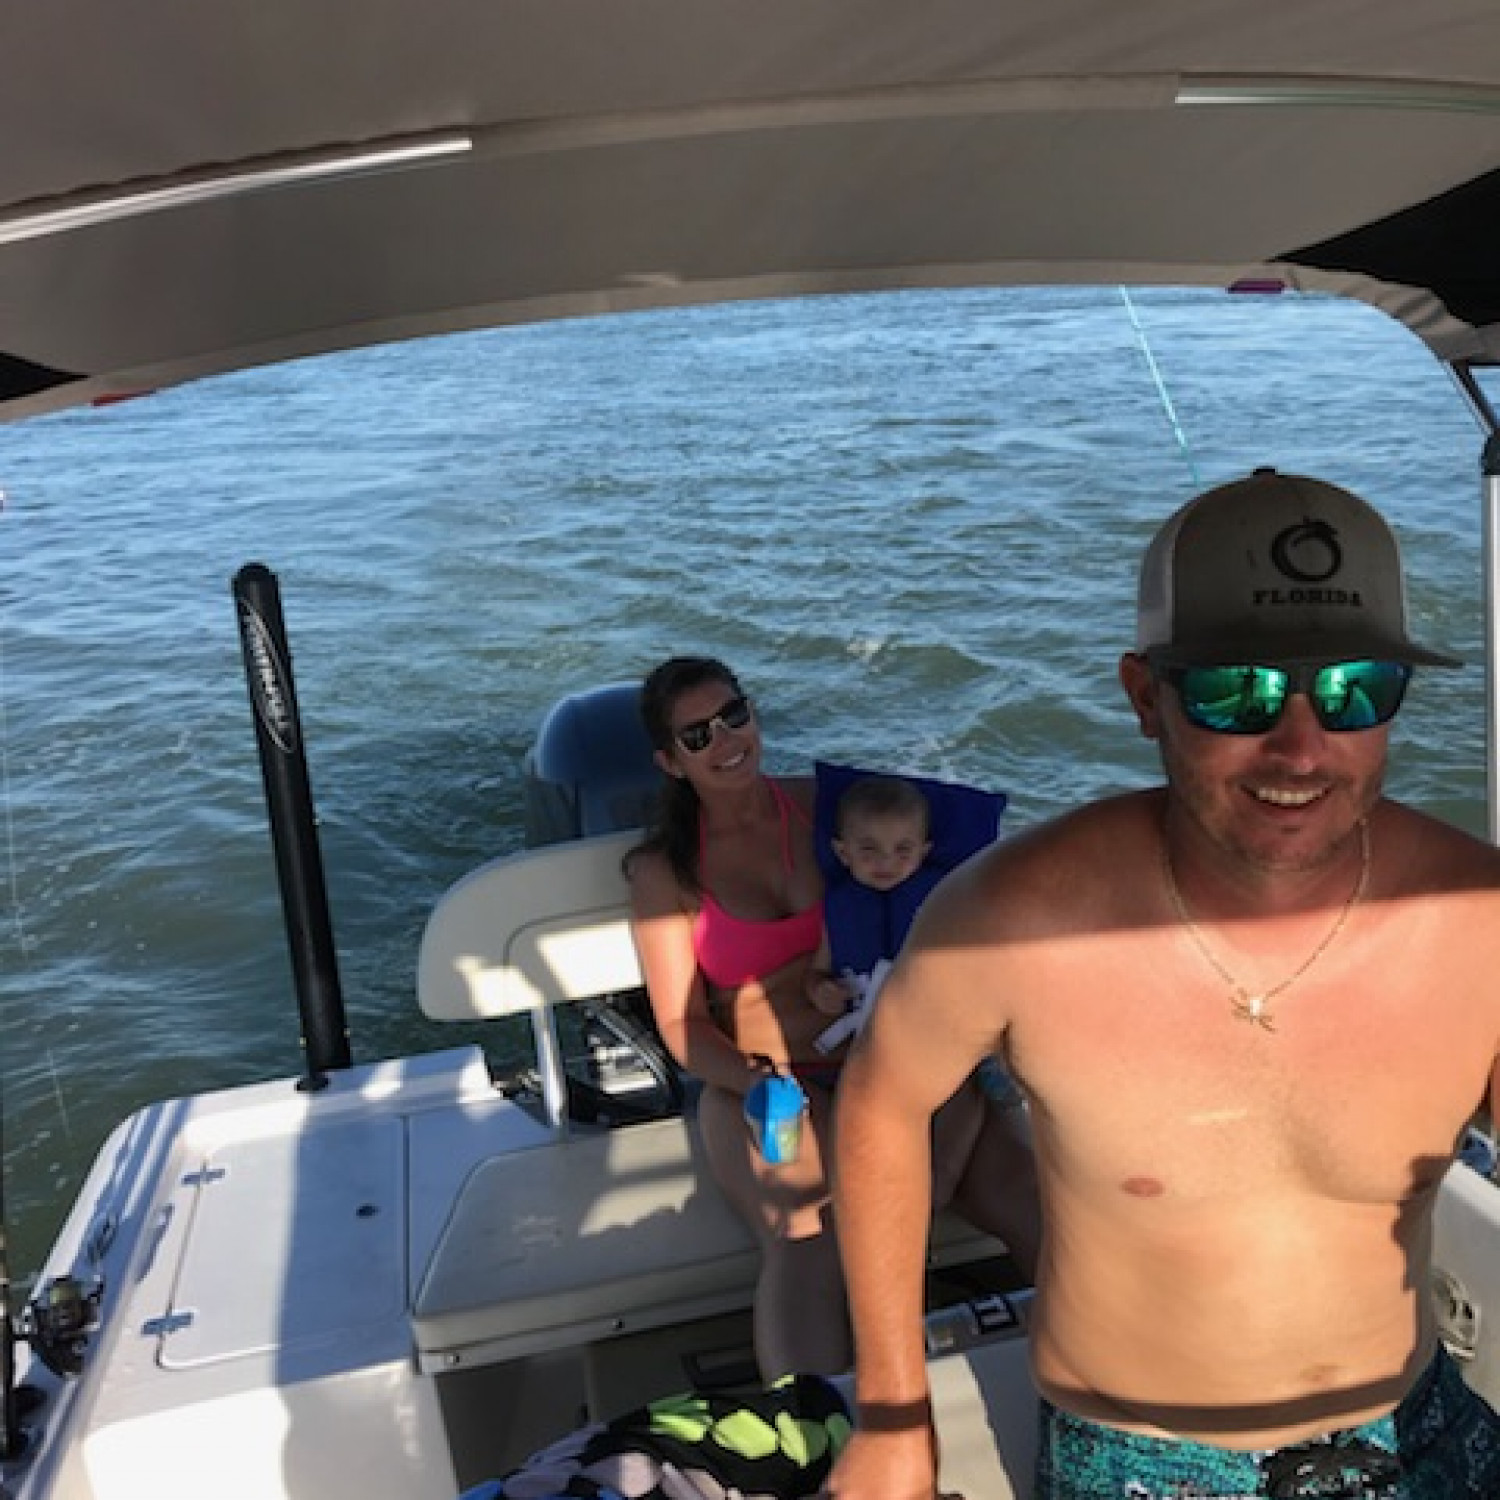 Title: Schooley Sportsman - On board their Sportsman Island Bay 20 Bay Boat - Location: Stuart, Florida. Participating in the Photo Contest #SportsmanNovember2017